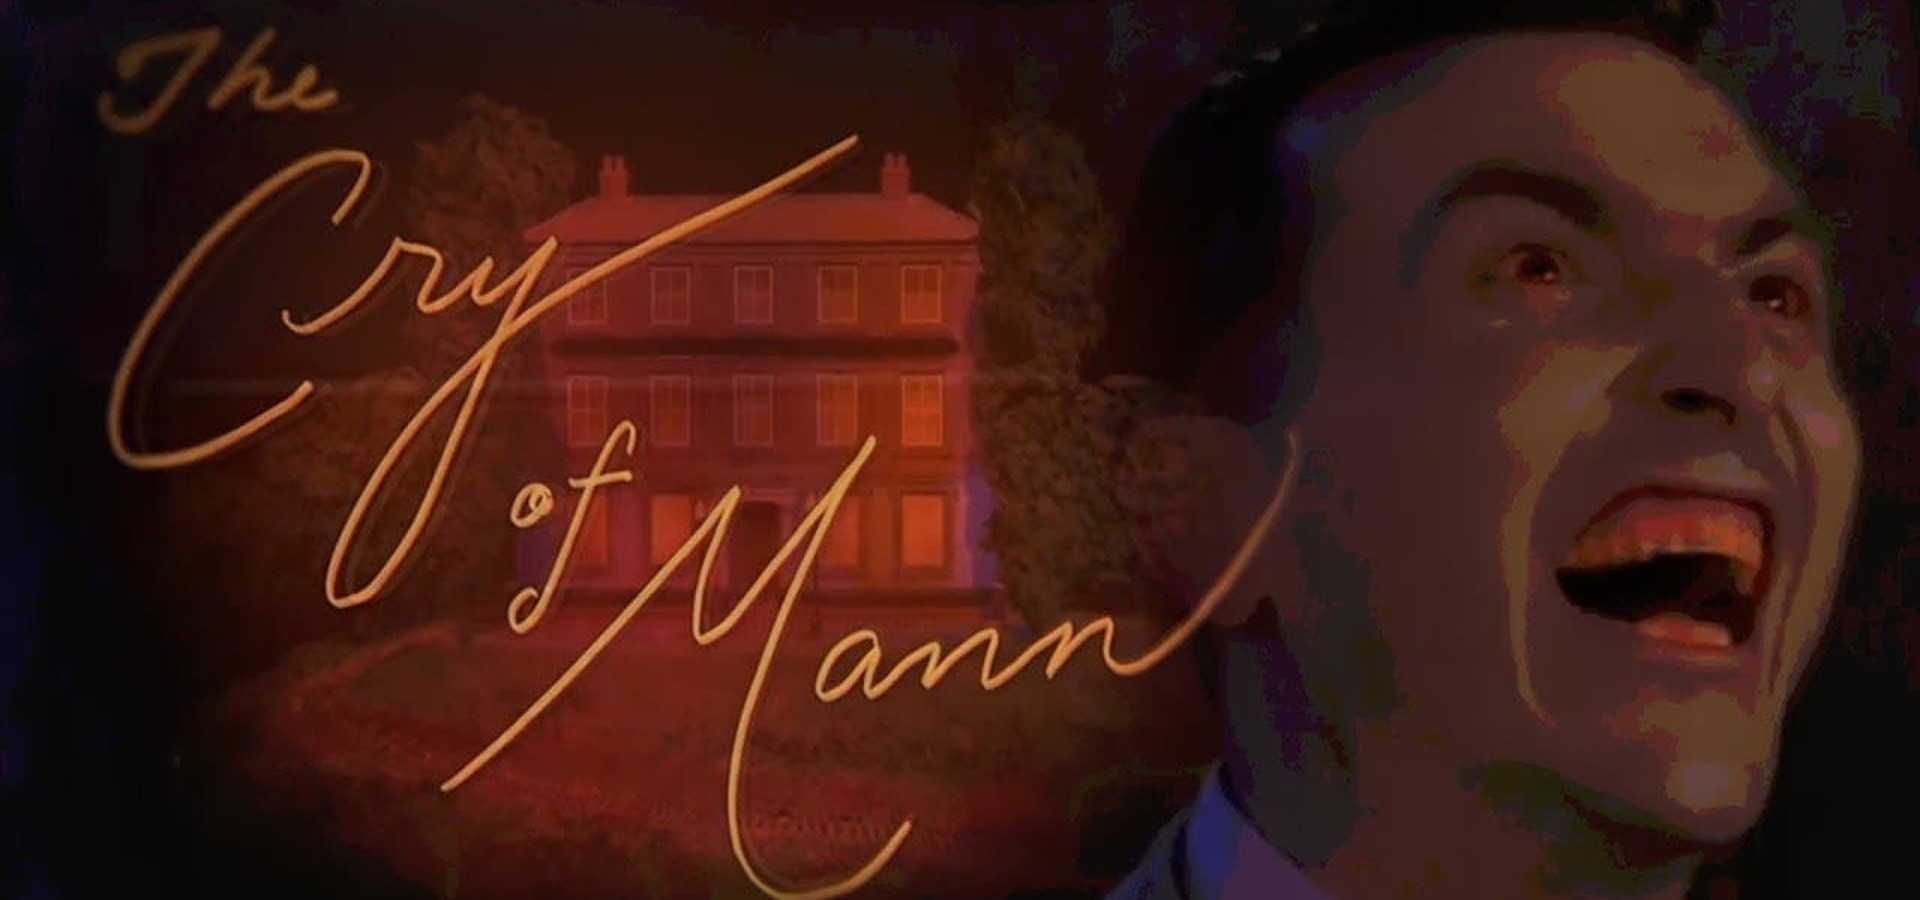 The Cry Of Mann